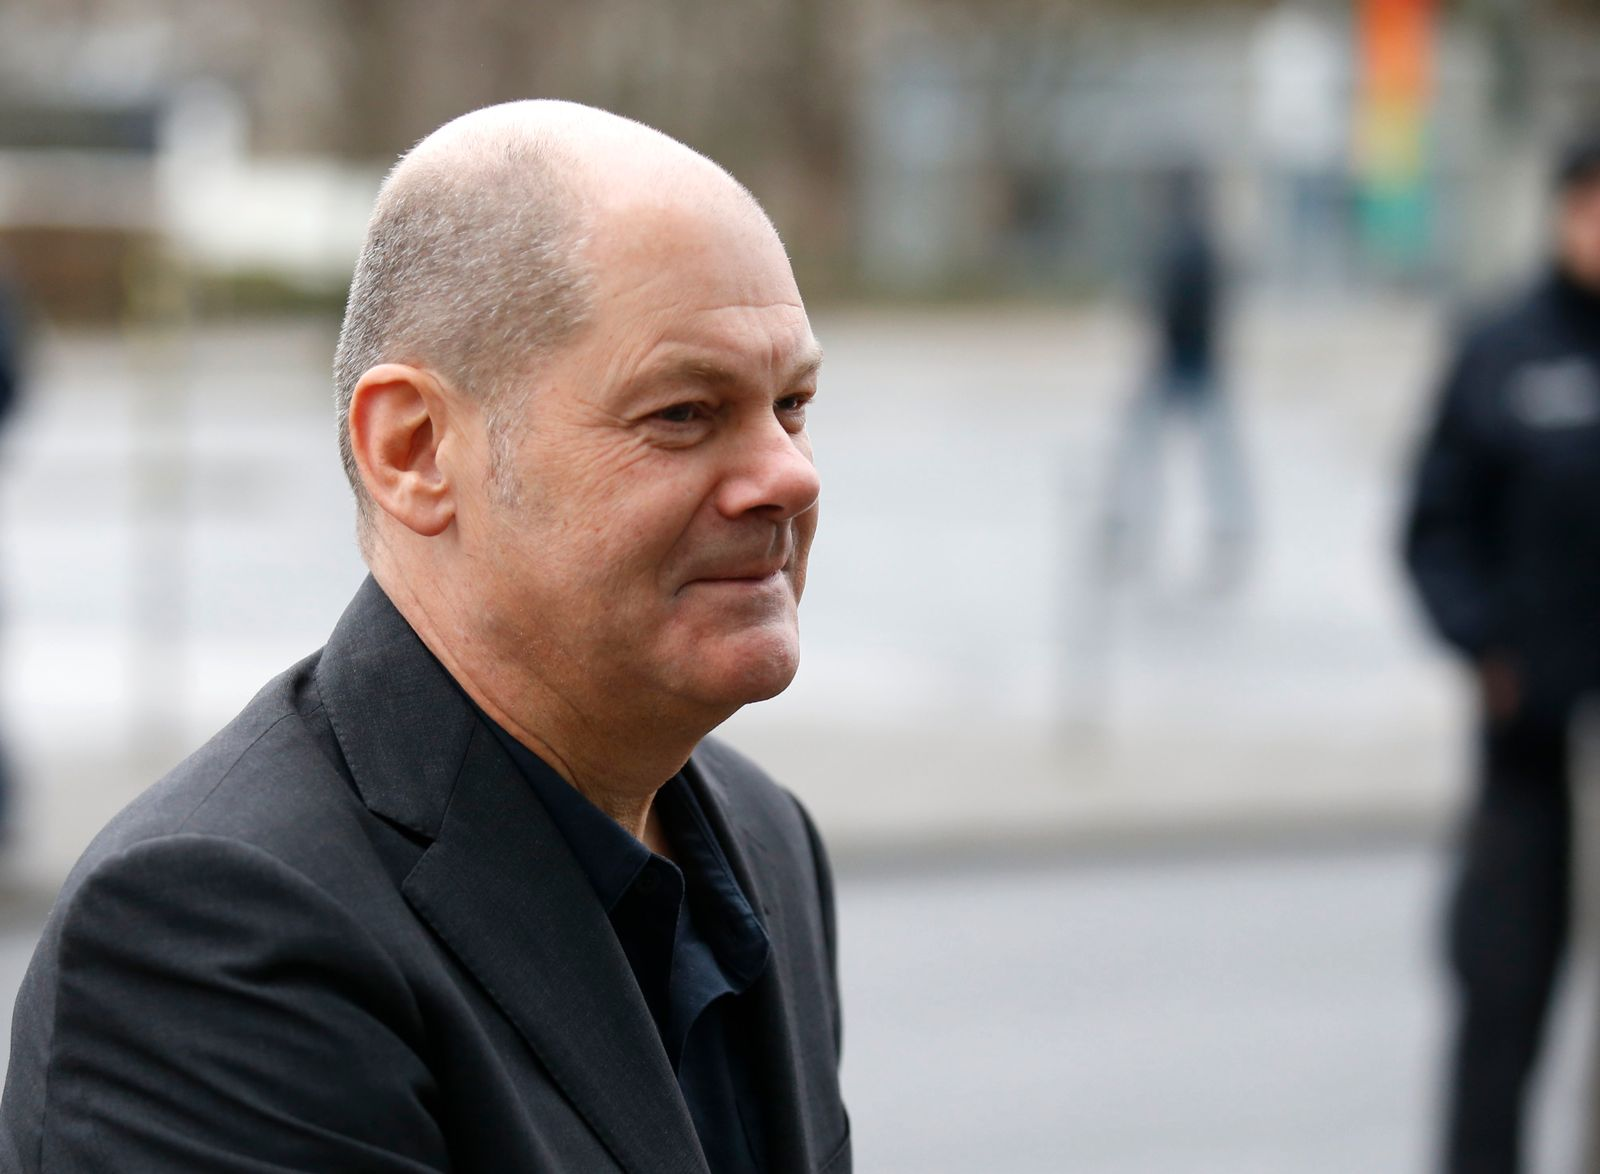 Scholz of the Social Democratic Party (SPD) arrives for coalition talks about forming a new coalition government at the CDU headquarters in Berlin